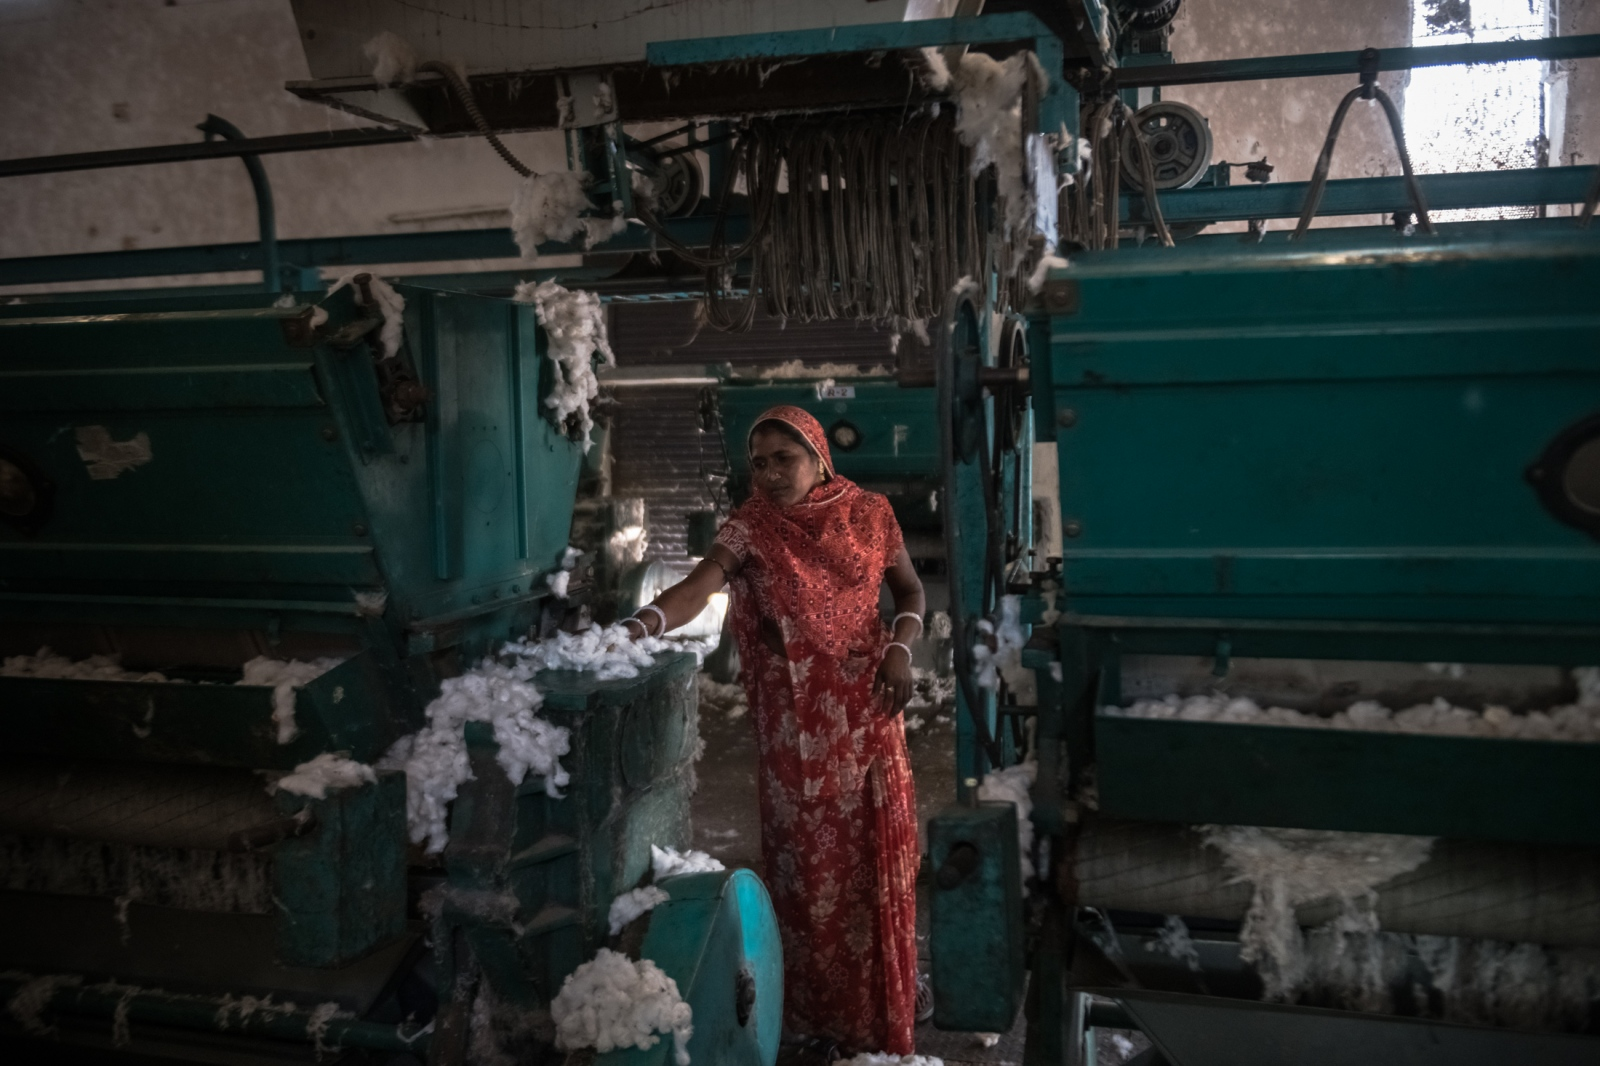 Manjula Popat clears cotton from processing machines at the Radhe Industries cotton-ginning factory